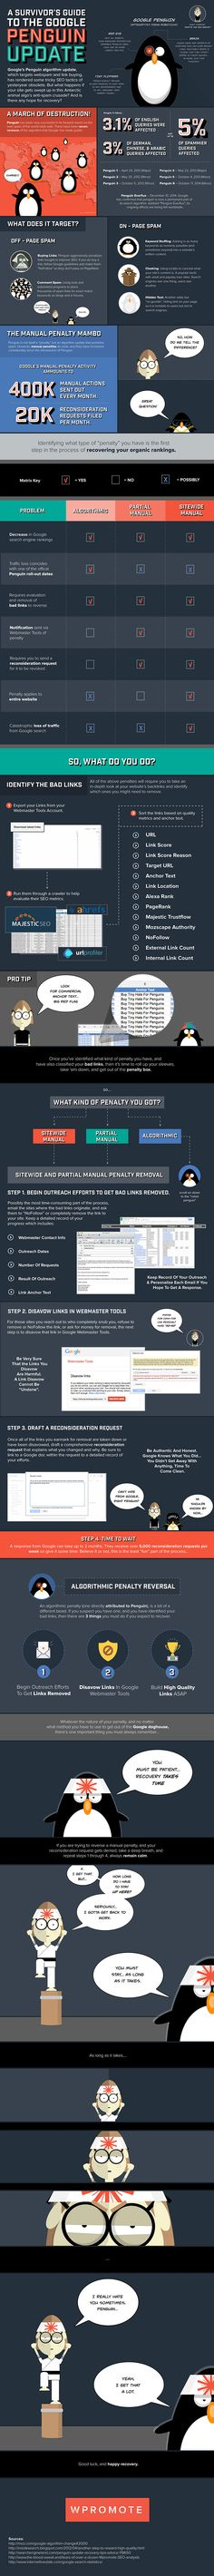 A Survivor's Guide To The Google Penguin Update